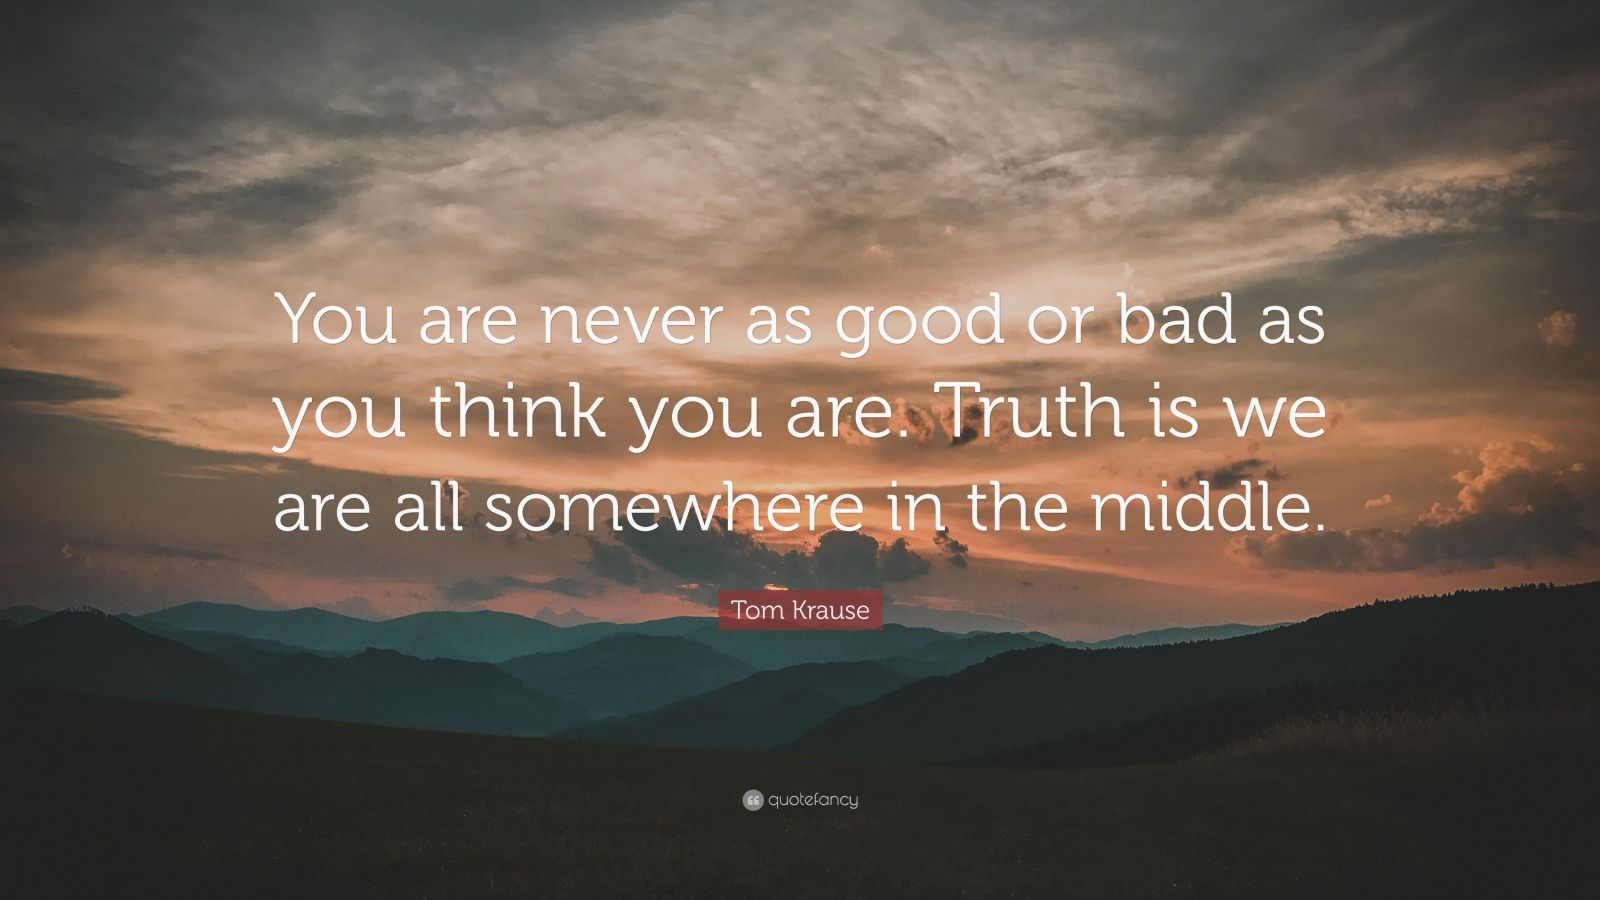 """Tom Krause Quote: """"You are never as good or bad as you think you are. Truth is we are all somewhere in the middle."""""""